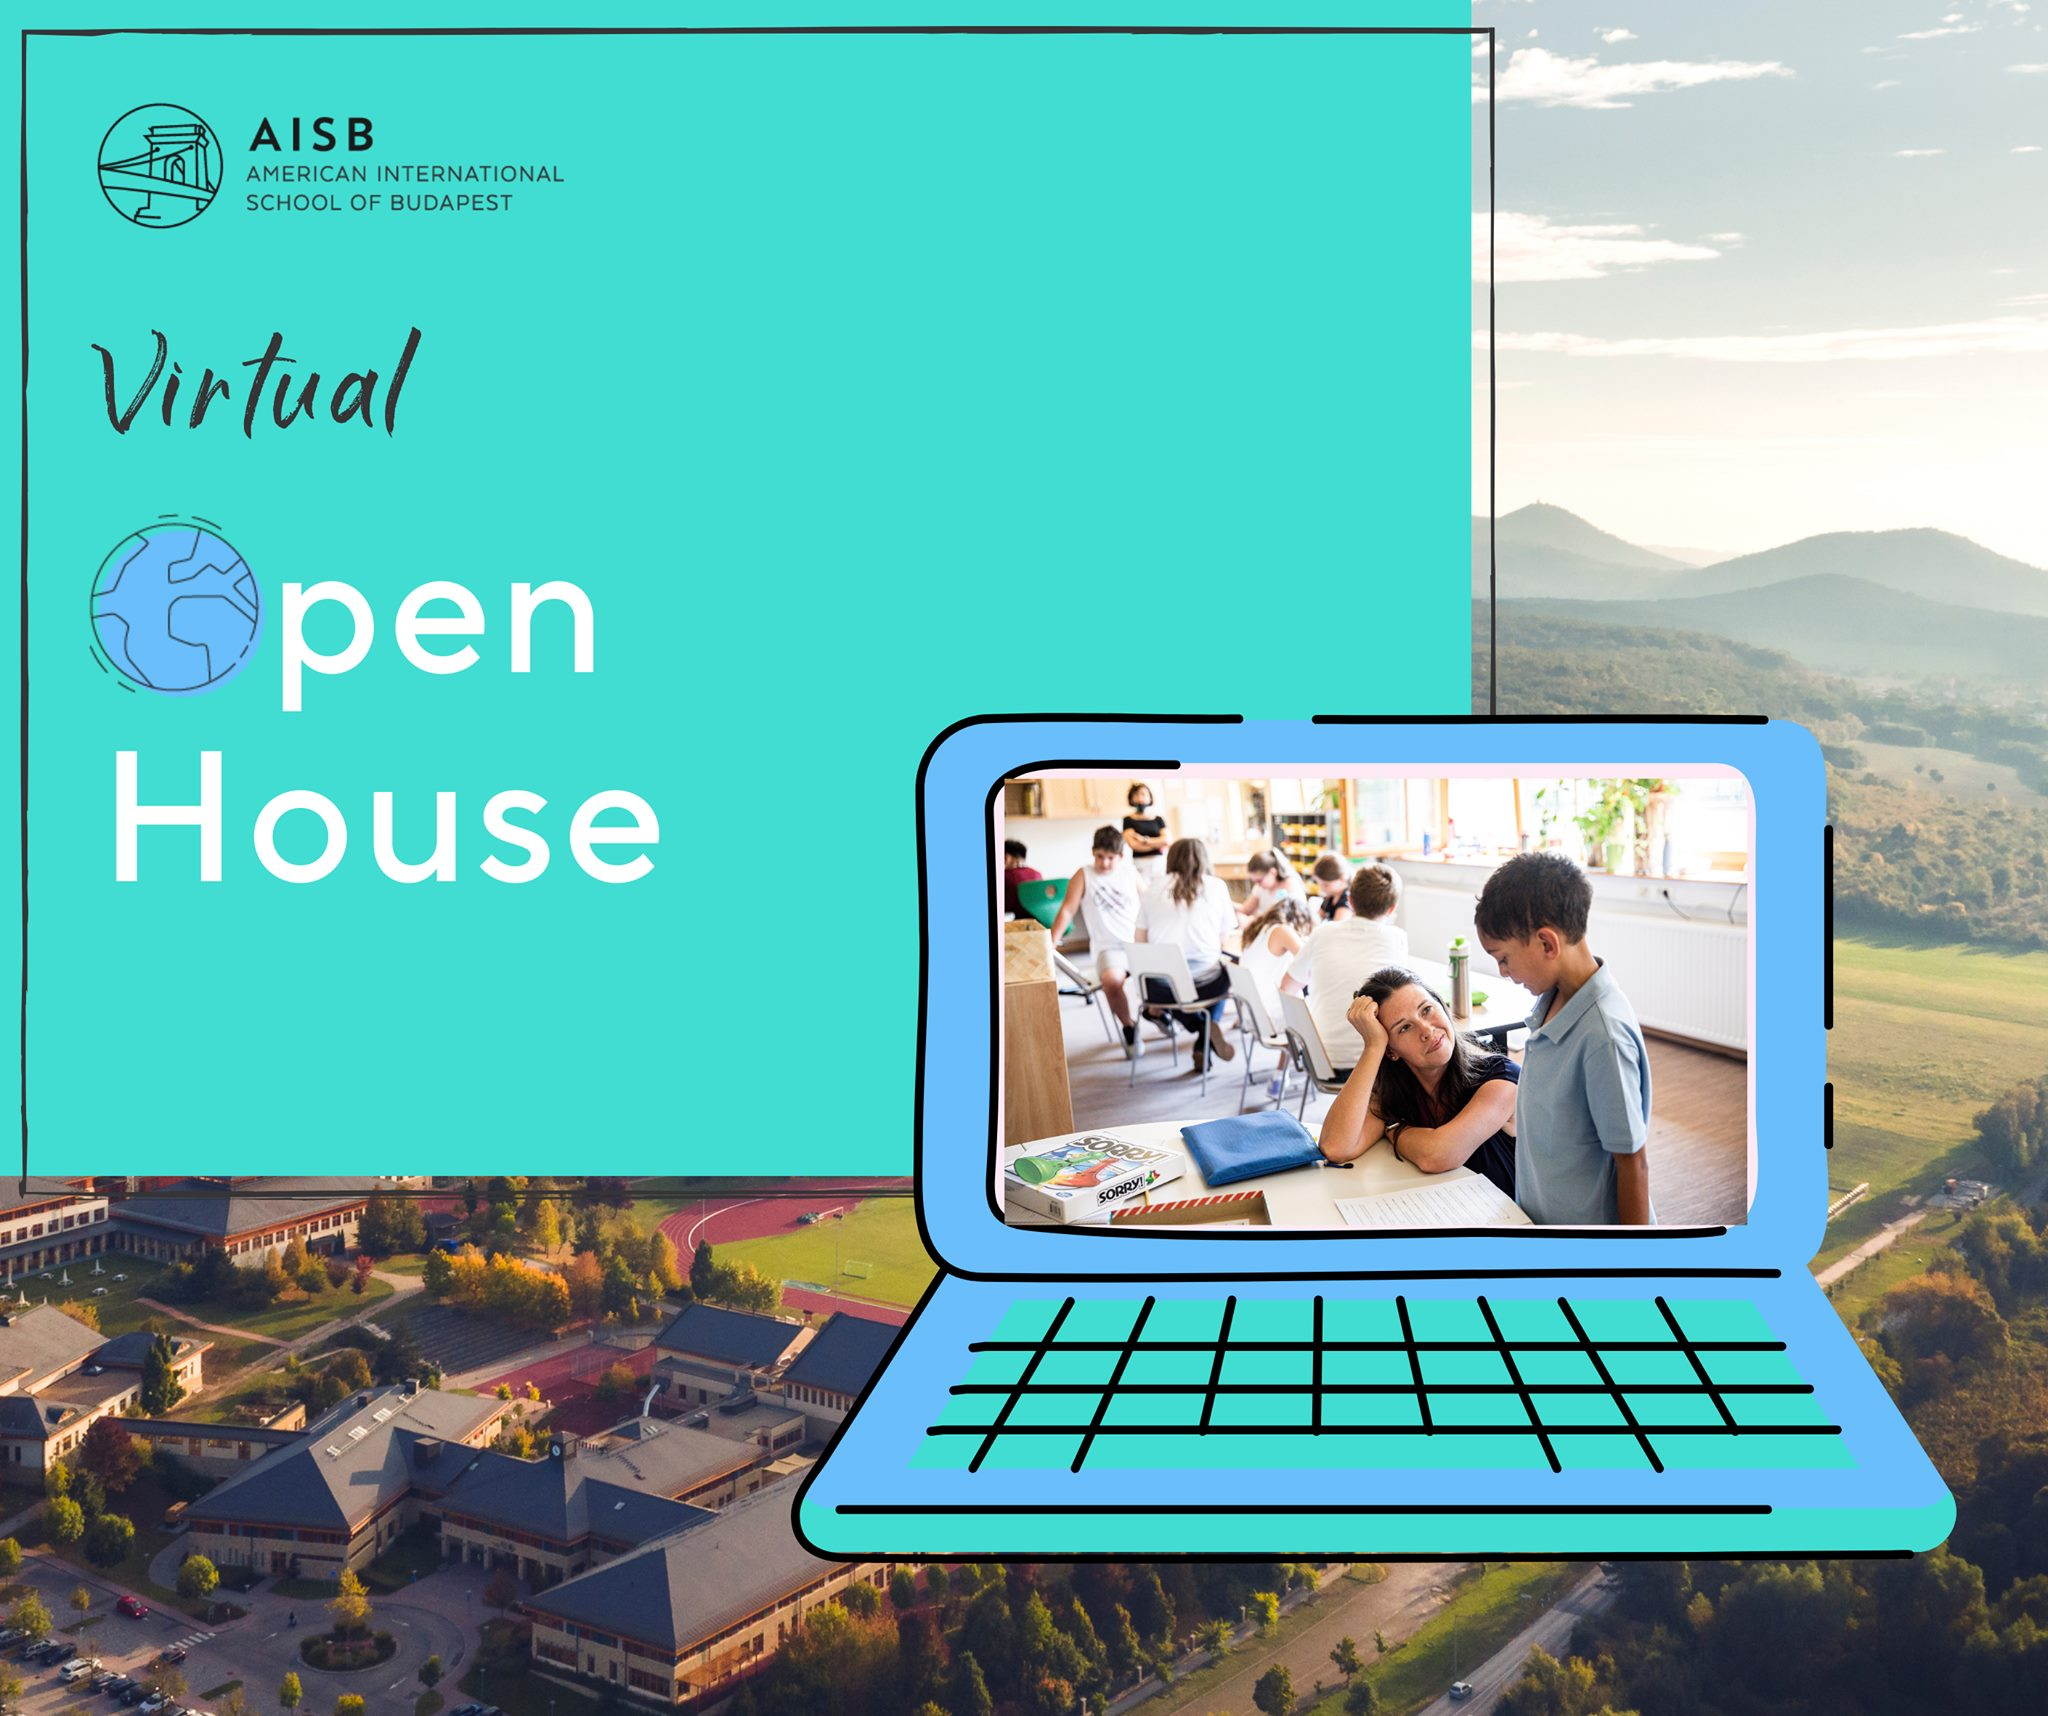 American International School Budapest Elementary School Virtual Open House, 21 January